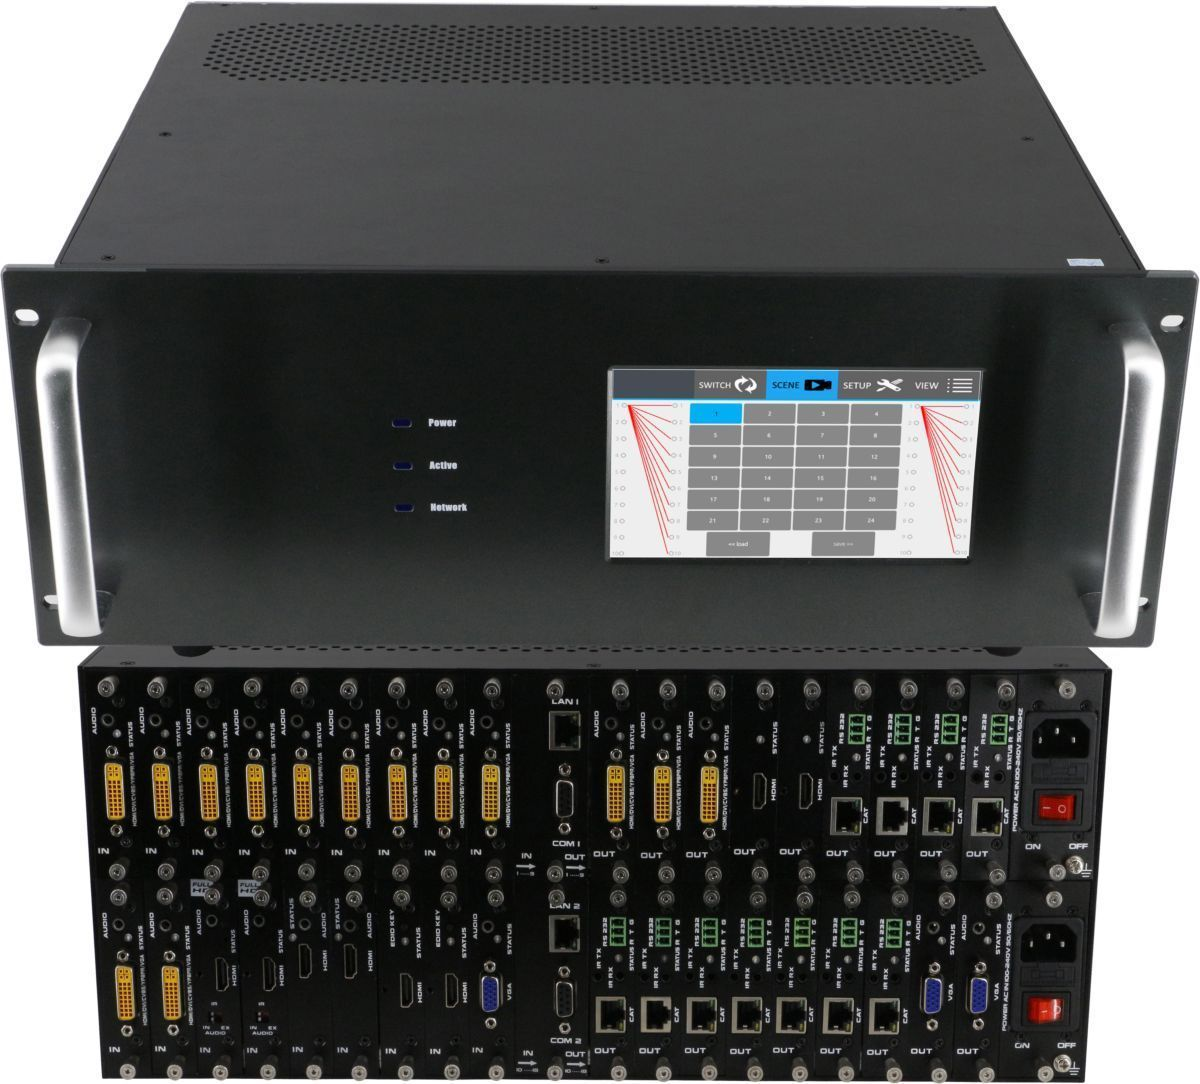 4K 15x16 HDMI Matrix Switcher with Color Touchscreen